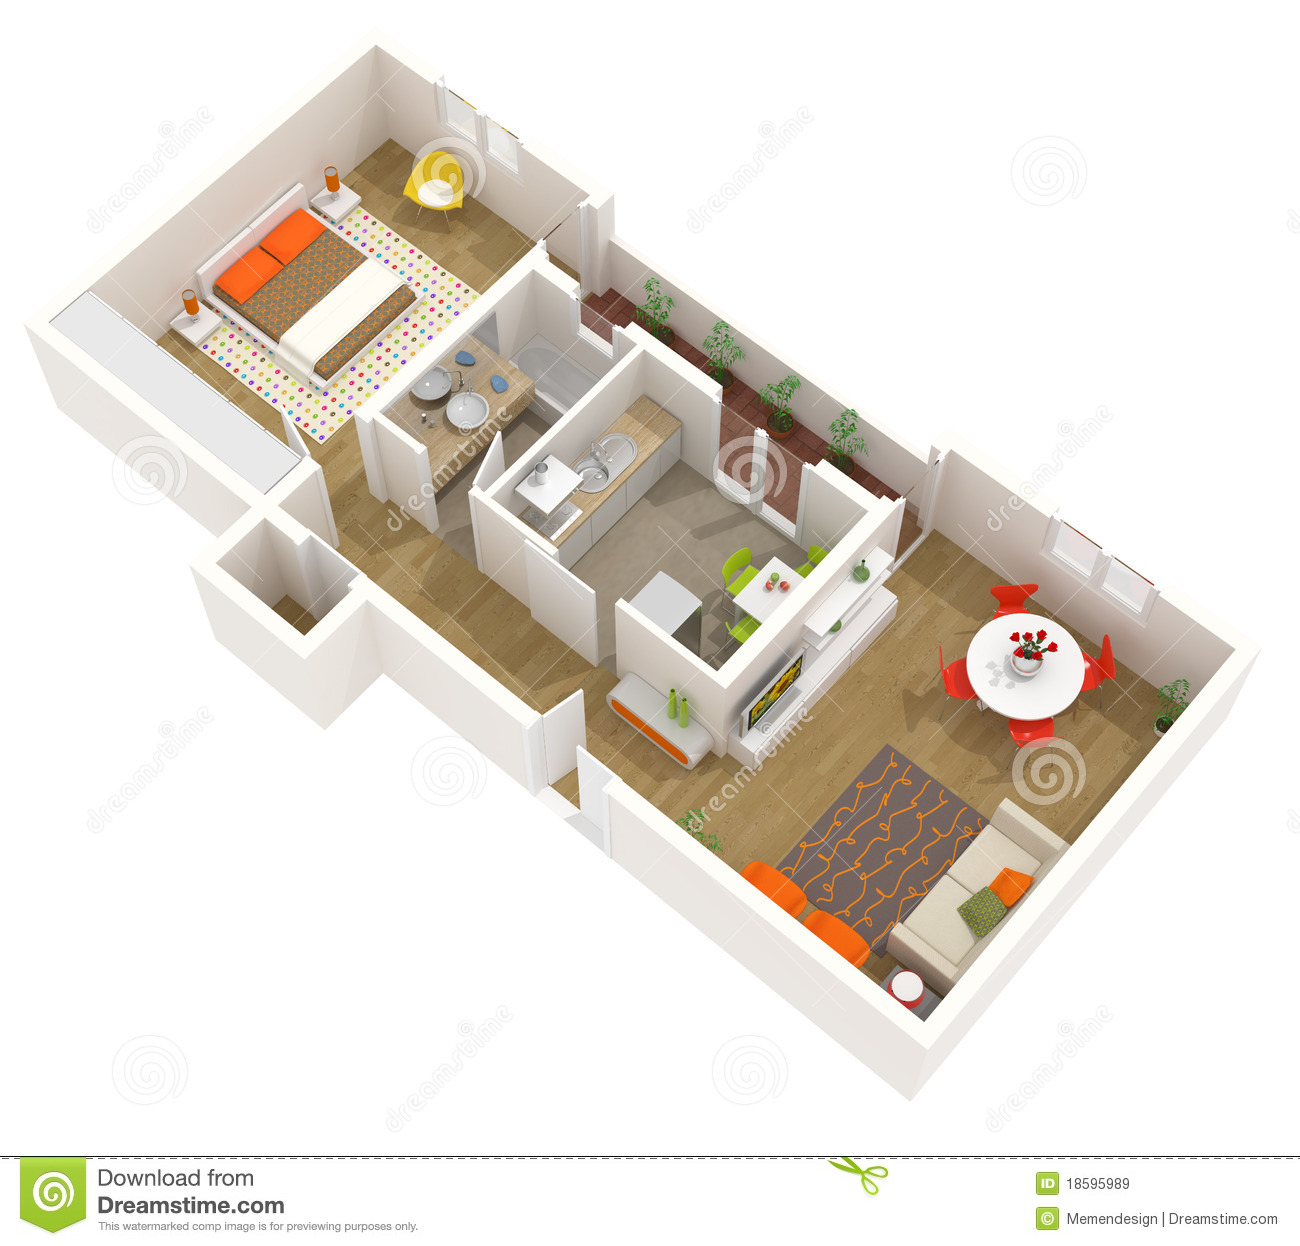 Royalty Free Stock Photo Apartment Design Floor Furnishing Image Interior